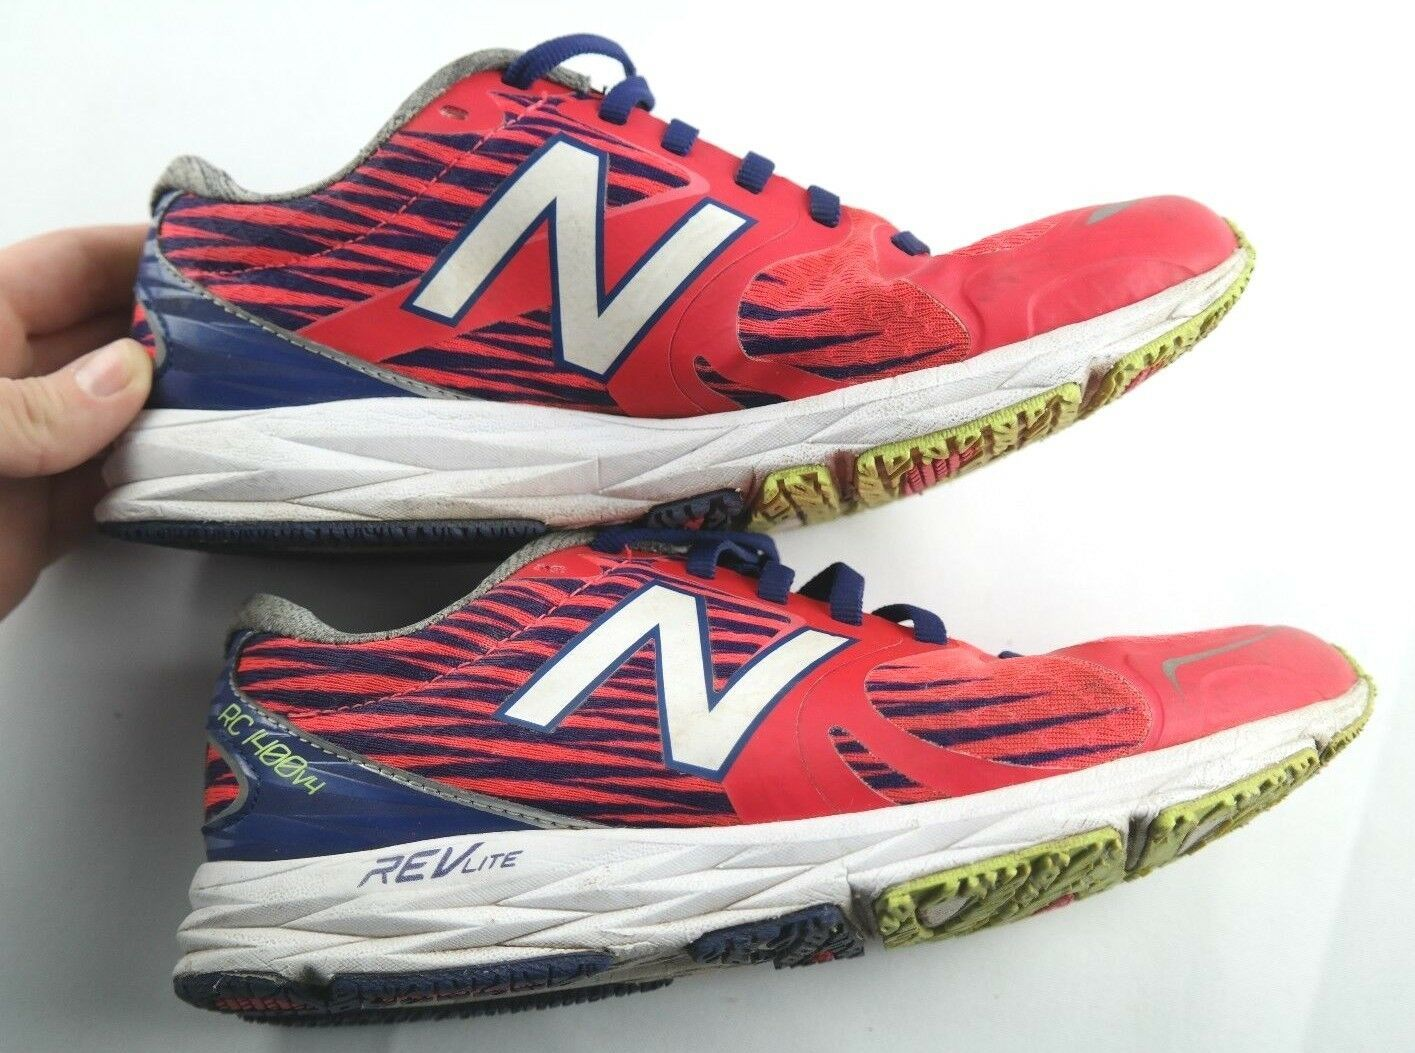 New Balance RC 1400 v4 Running Shoes Womens Size 7 Athletic Sneakers